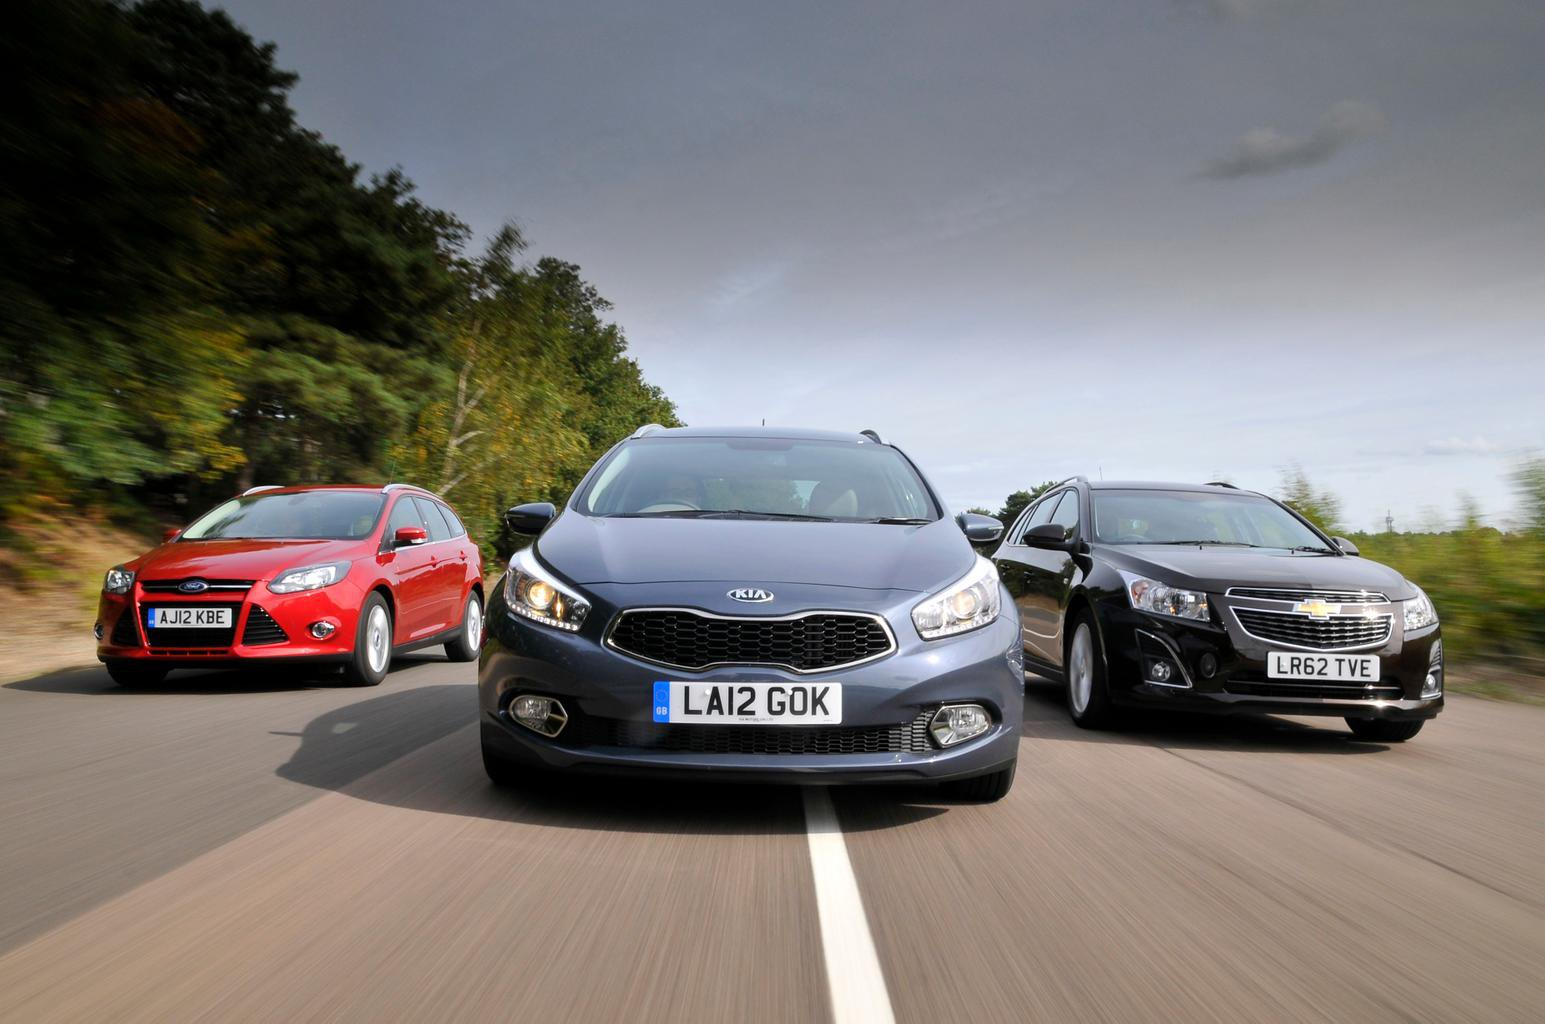 Used test: Ford Focus Estate vs Kia Cee'd Sportswagon vs Chevrolet Cruze Station Wagon